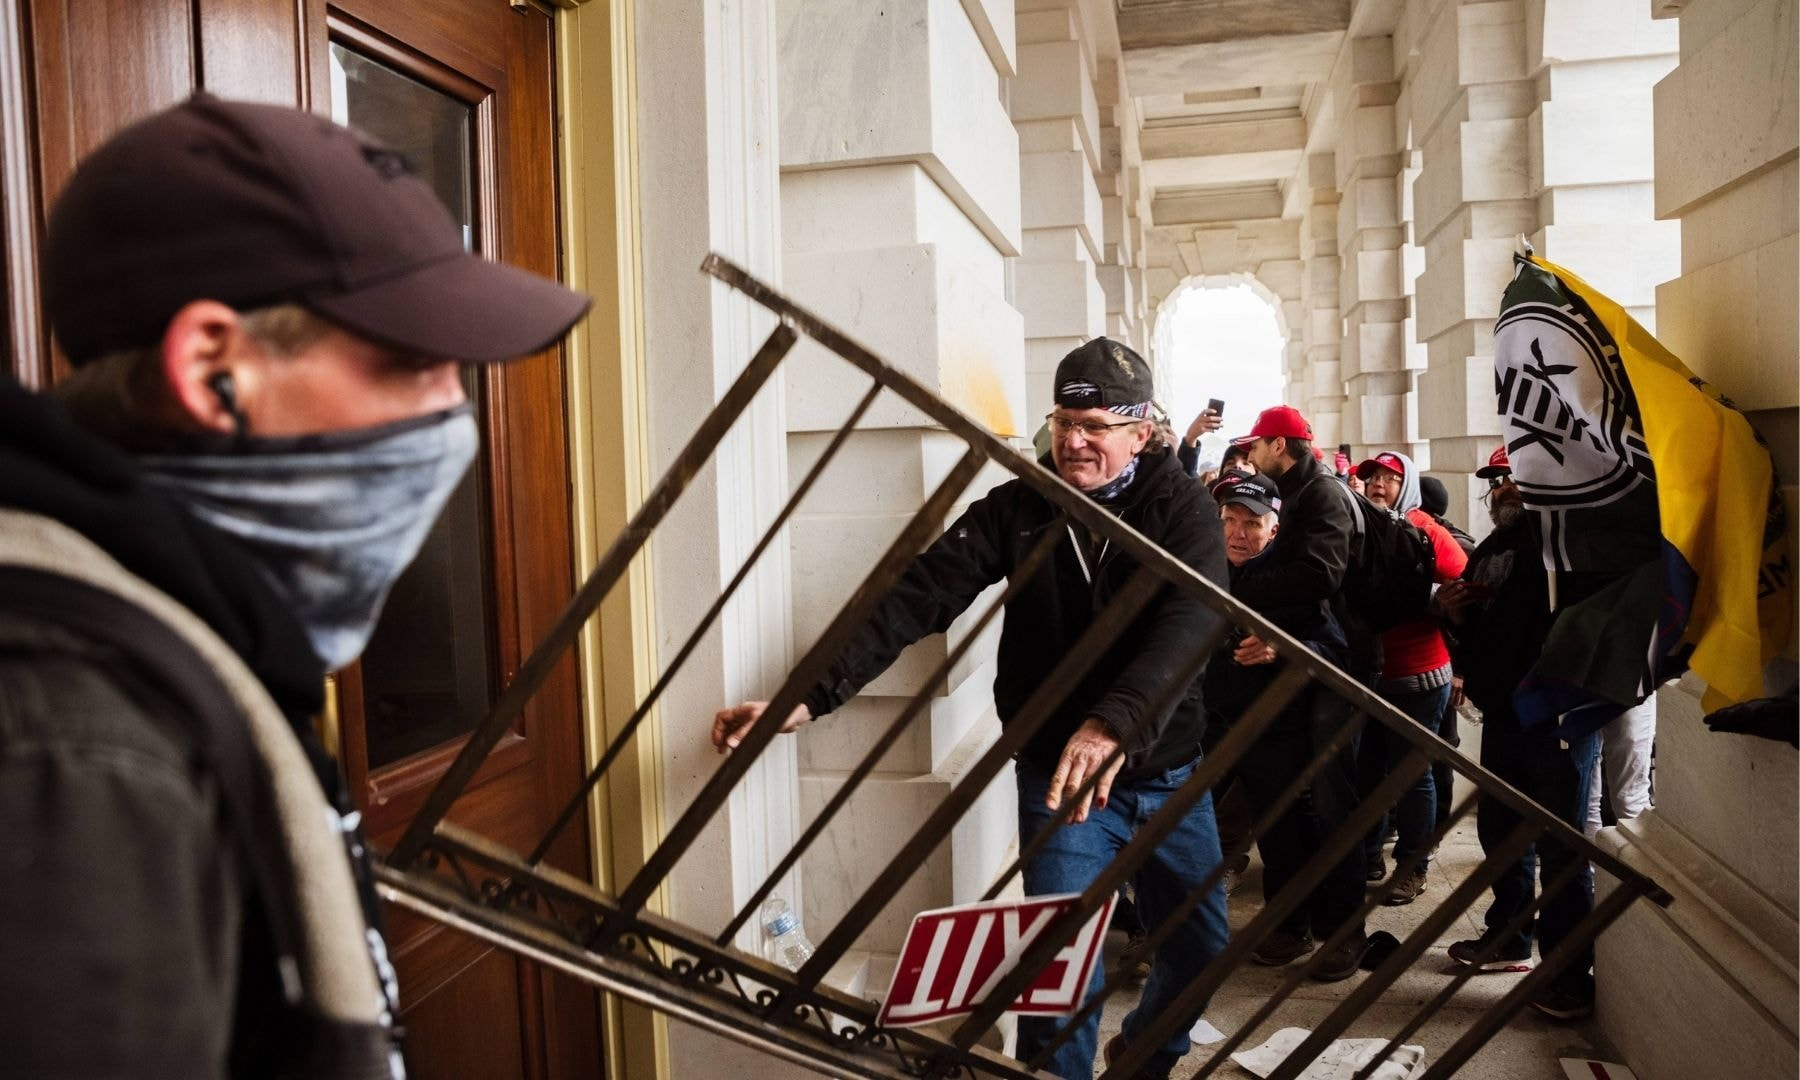 A member of a pro-Trump mob bashes an entrance of the Capitol Building in an attempt to gain access. — AFP